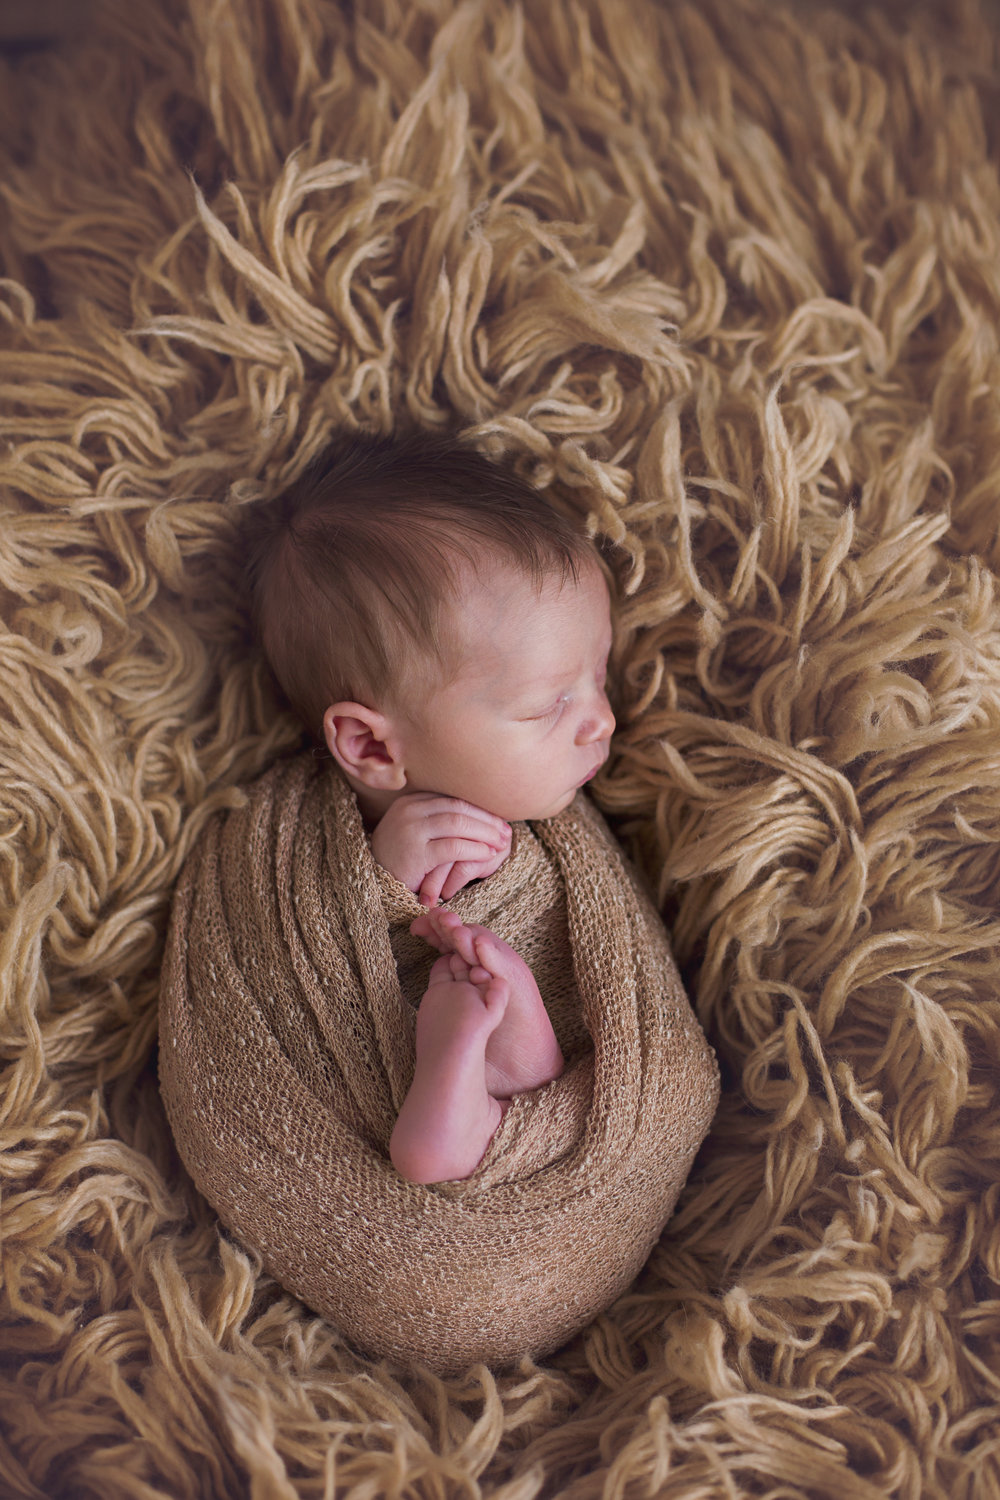 """""""Lindsey did such an amazing job with our little one!! She worked magic and captured some beautiful photos of our little man. Not only is she a great photographer but a great person and we had so much fun! I would recommend her to anyone!"""" - Brittany Curry"""